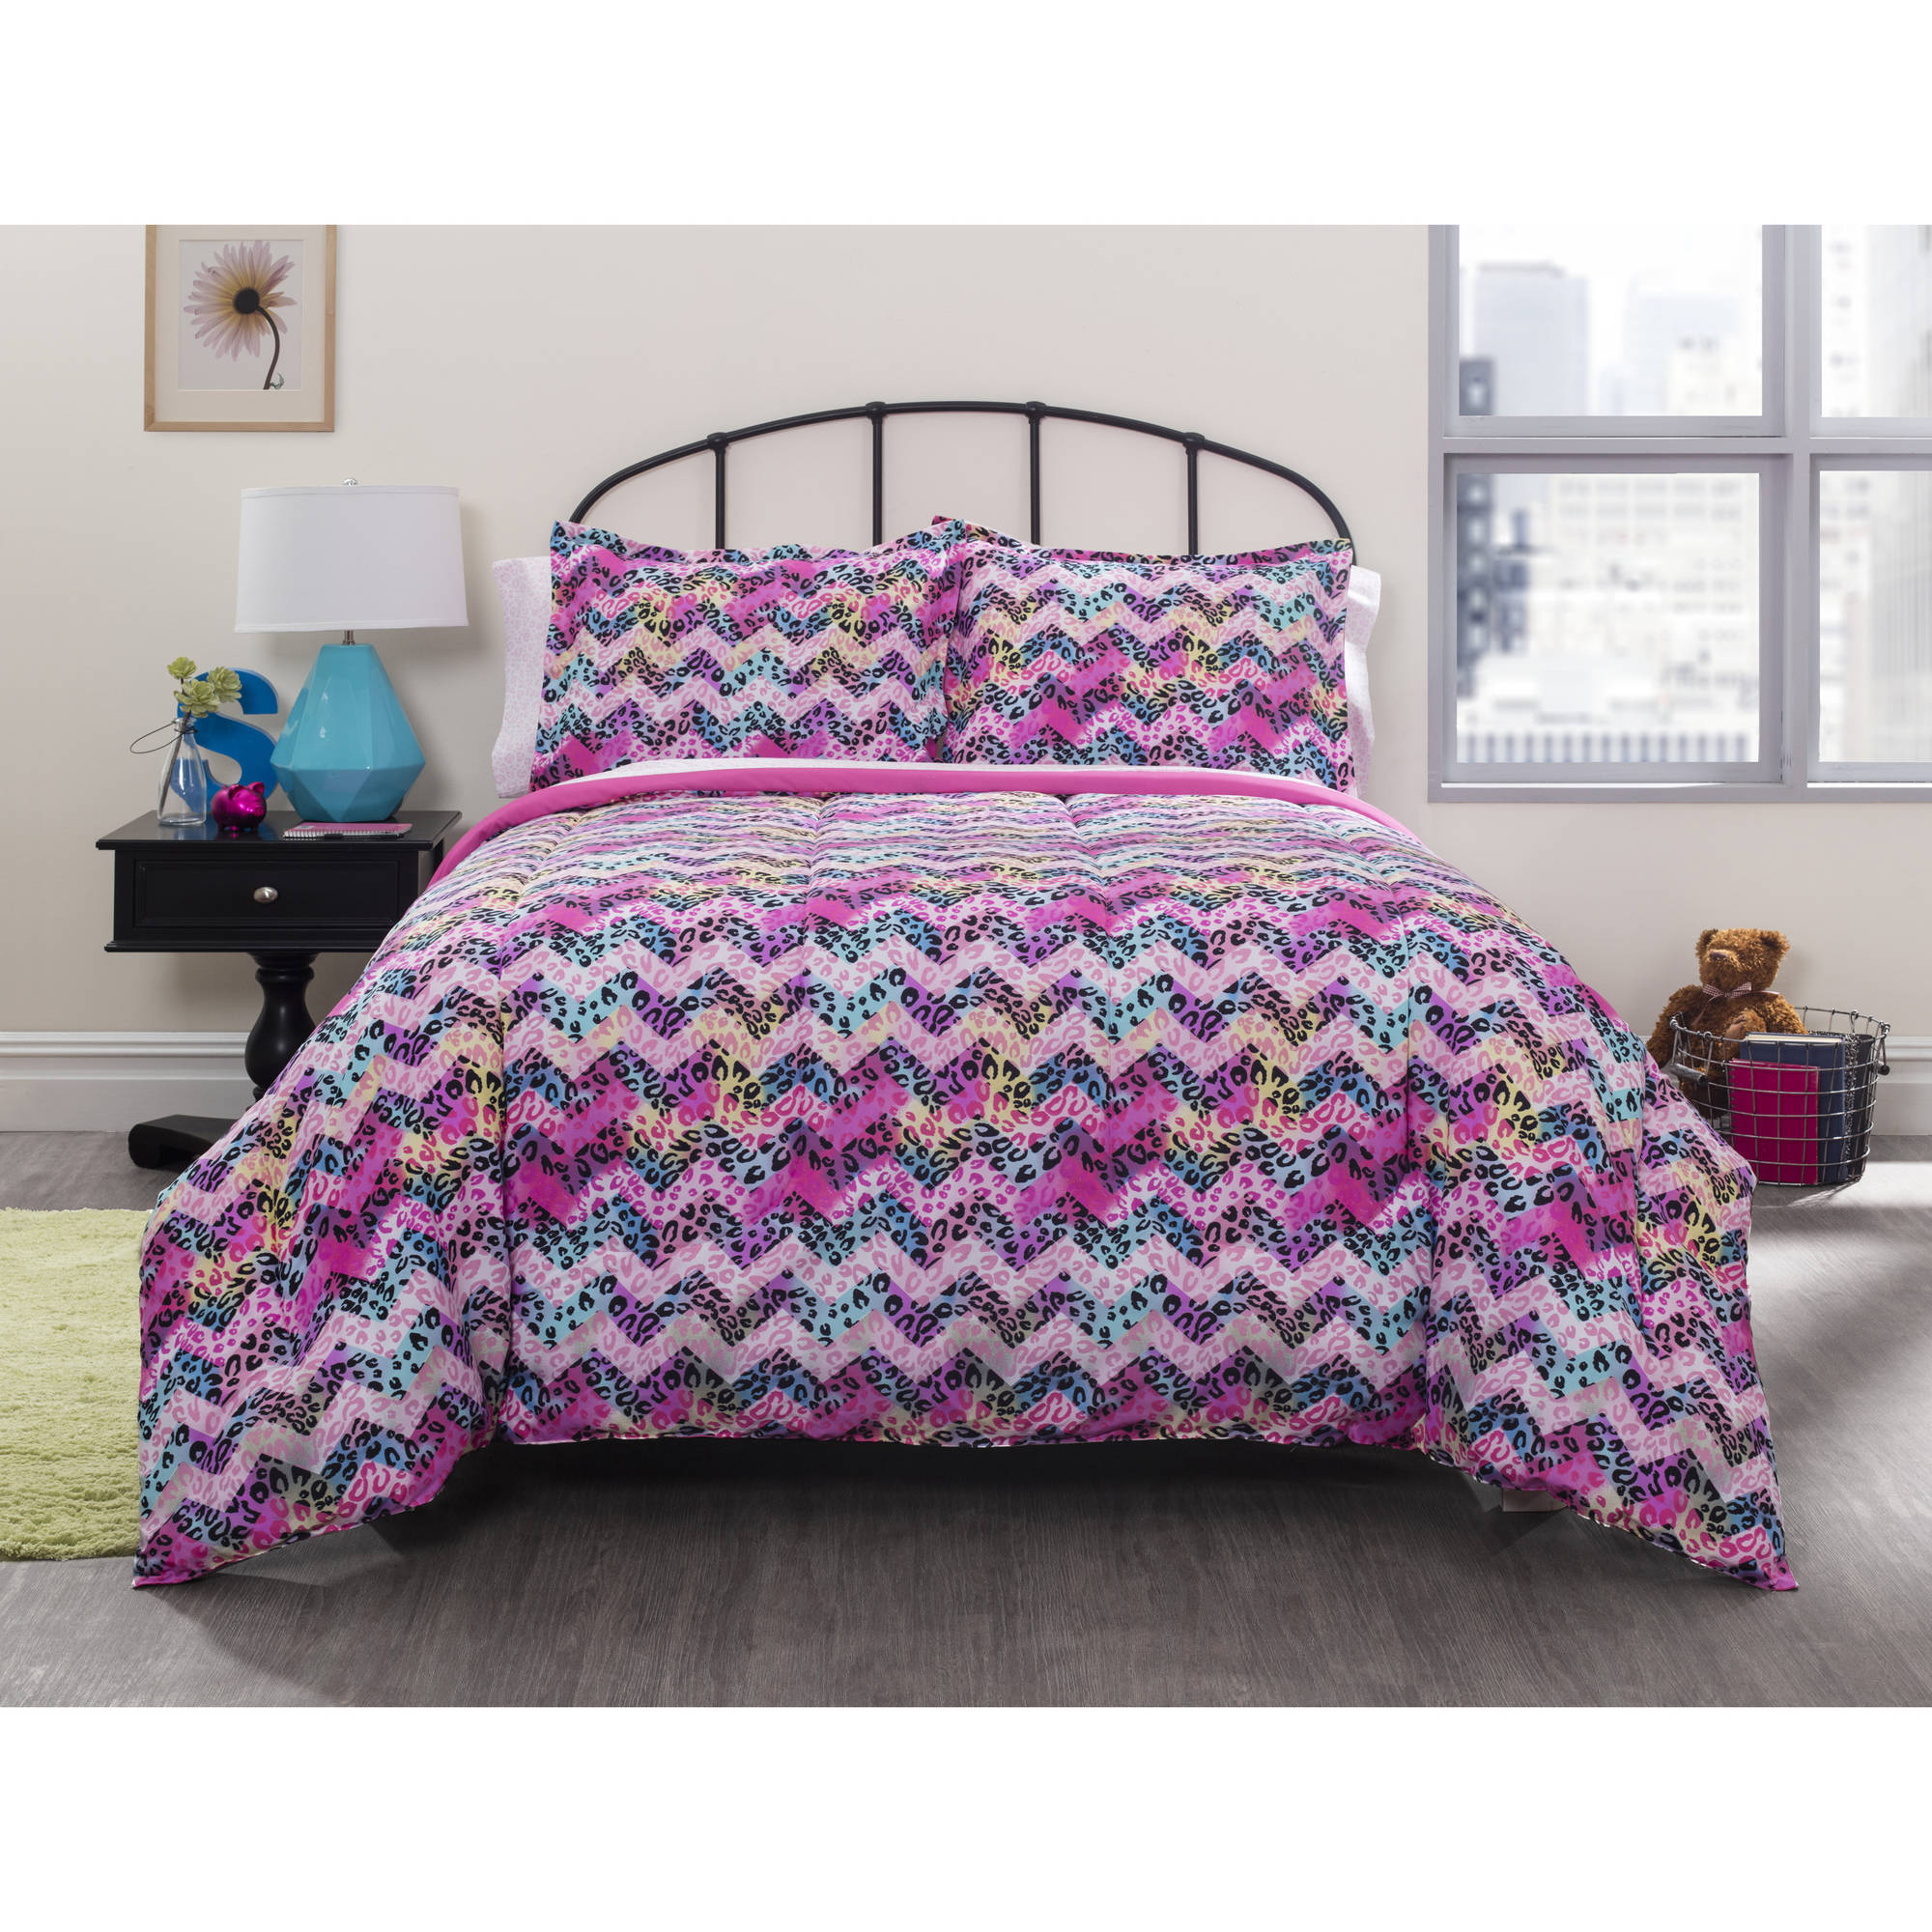 your zone cheetah chevron bed-in-a-bag bedding set